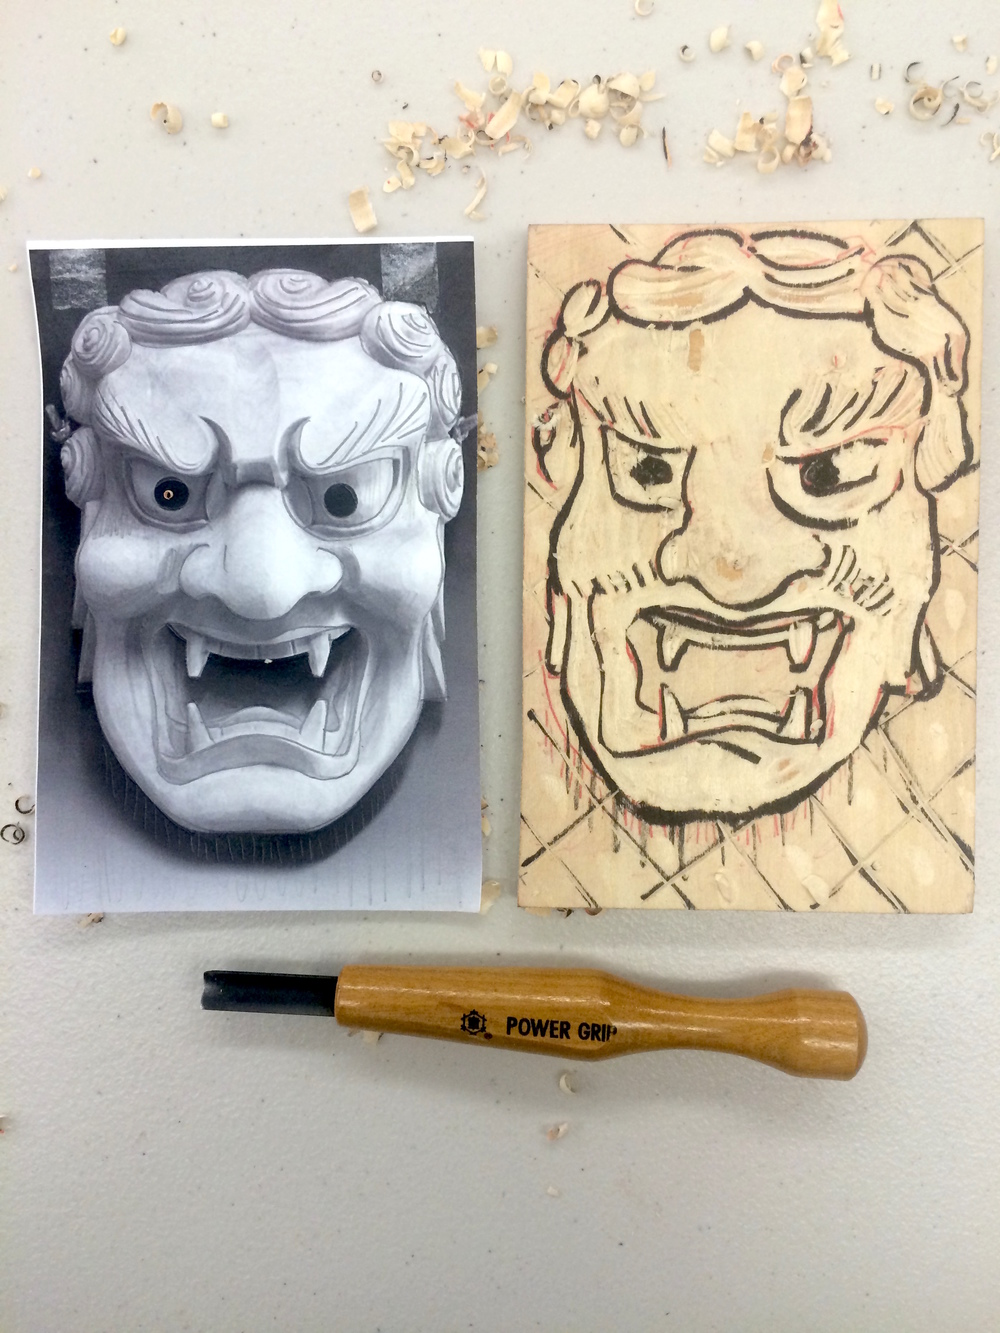 Carving out the image on the woodblock.